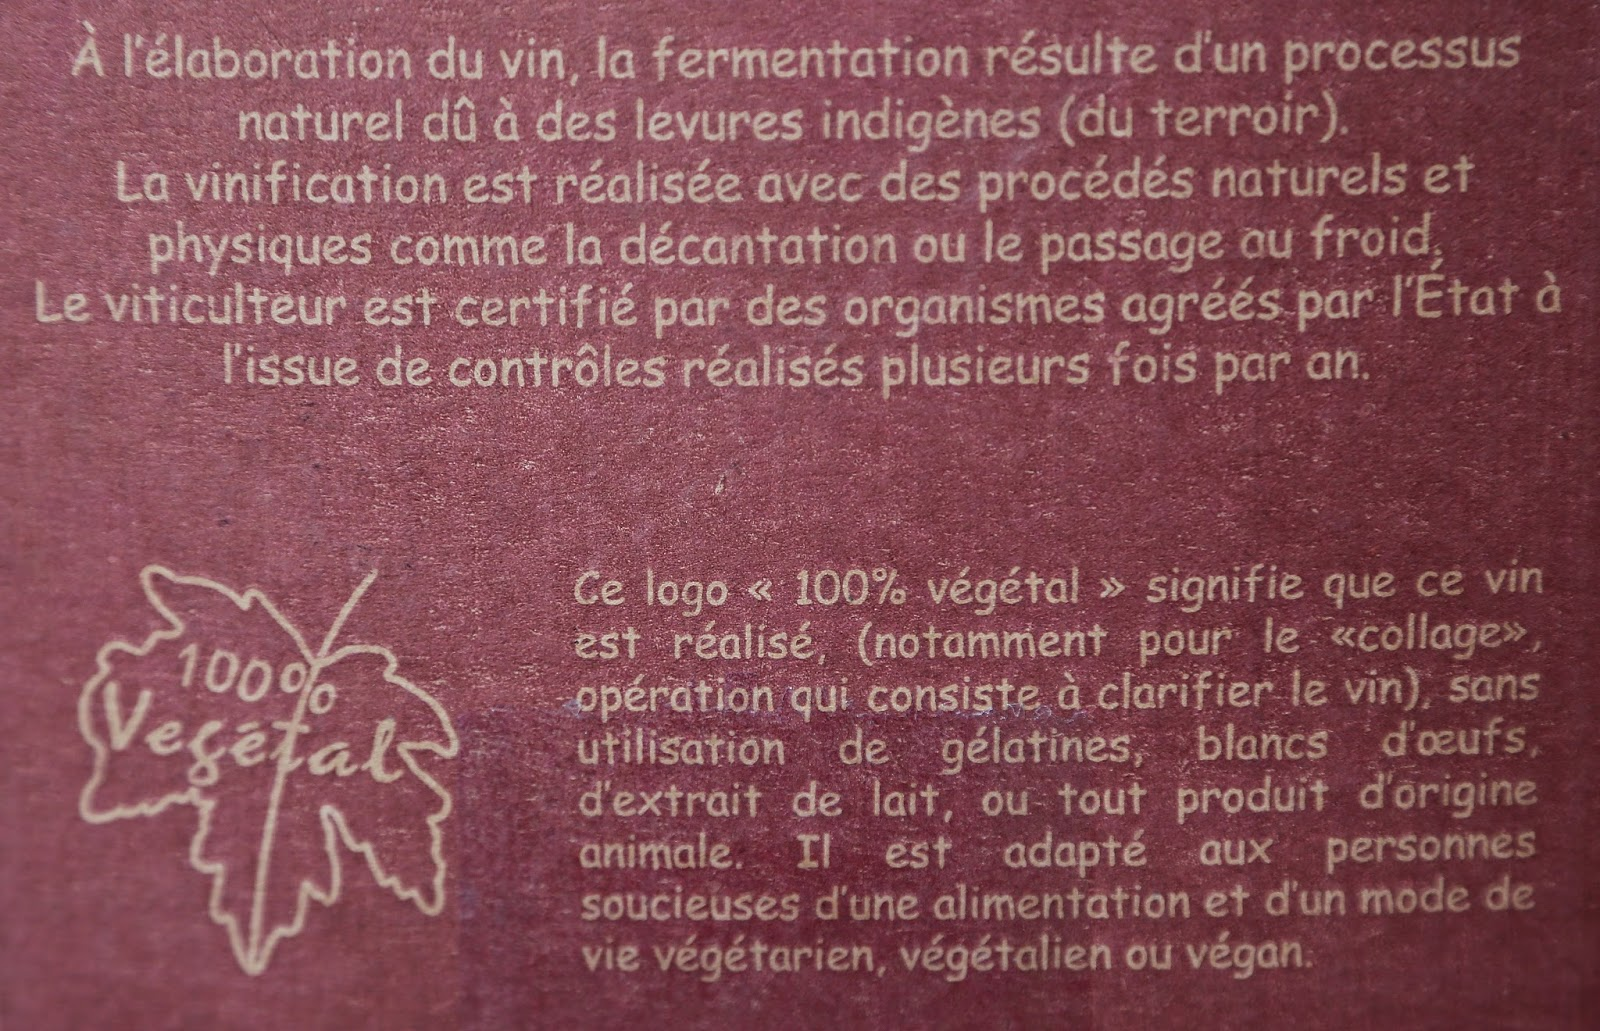 D health food store in l a -  Health Food Stores In Brittany Than We Had Imagined But There Were Also Within Them More Chances Of Finding Those Elusive Vegan Red Wines Than Among